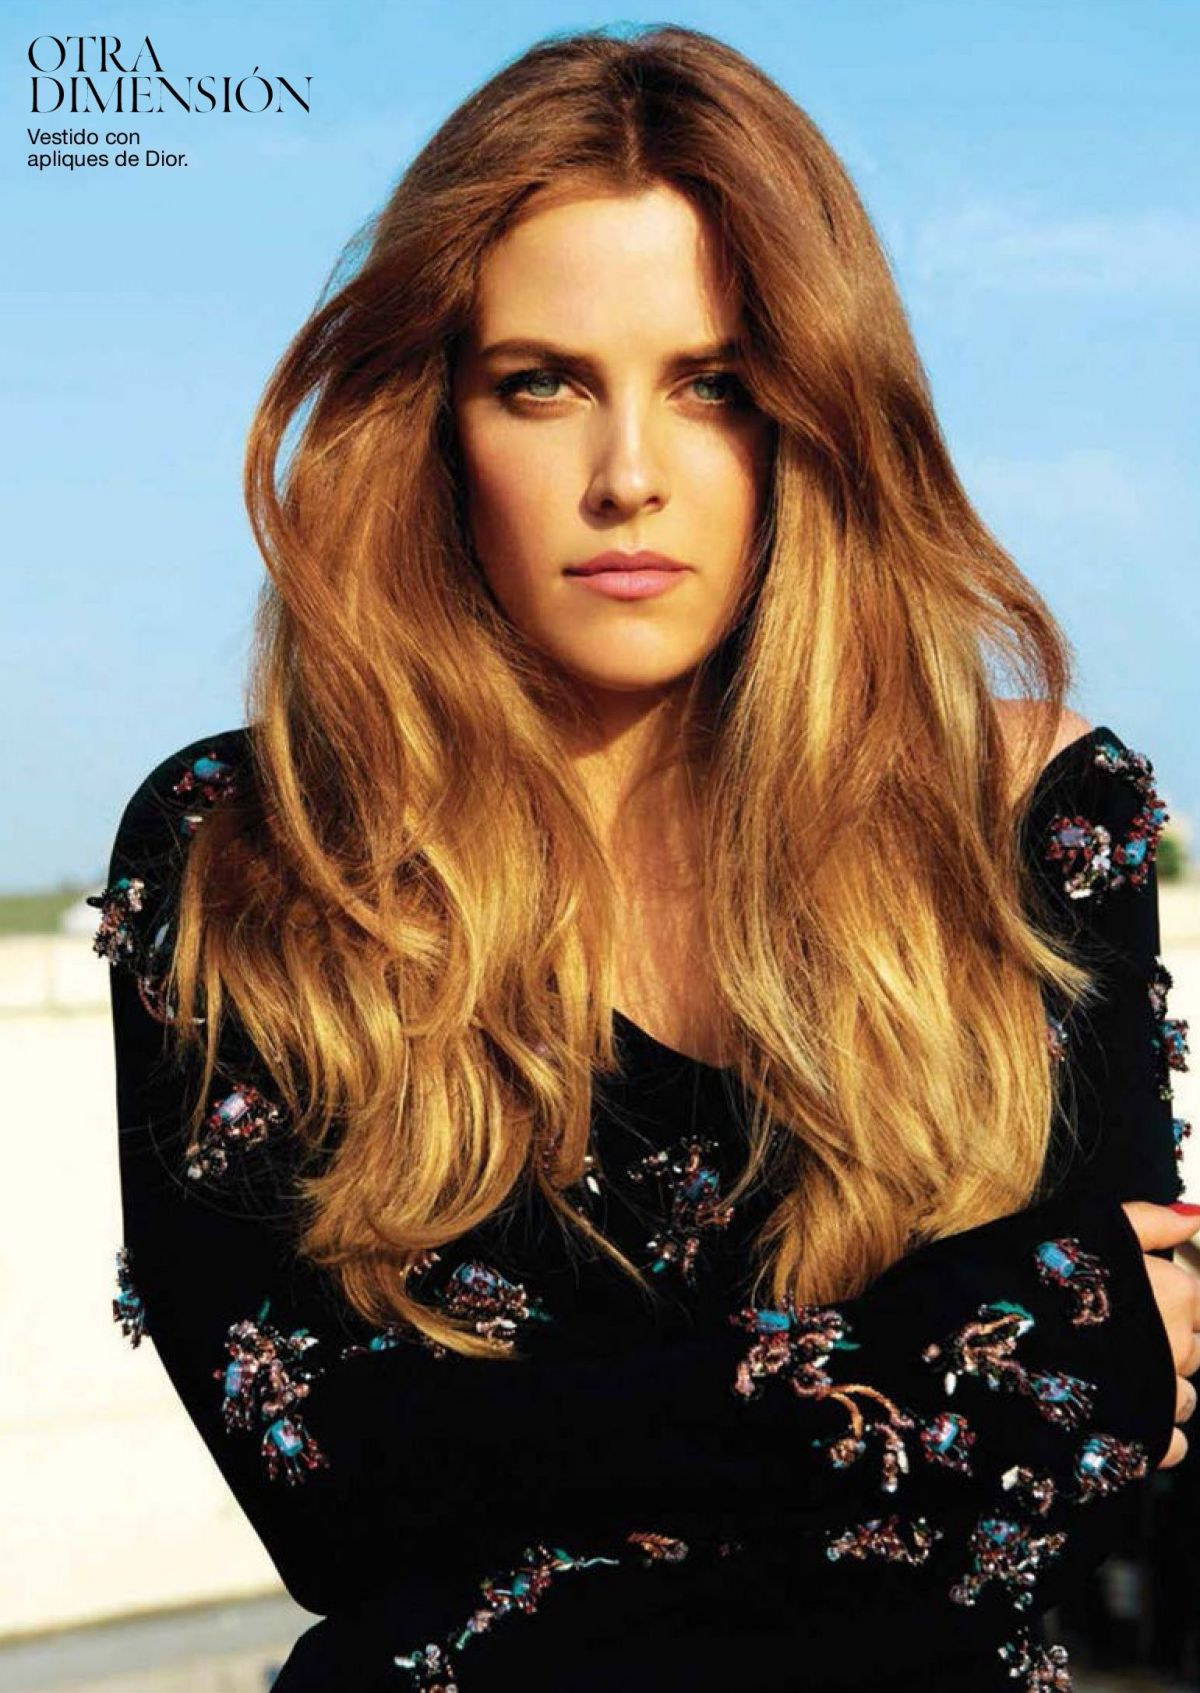 RILEY KEOUGH in Glamour Magazine, Spain September 2016